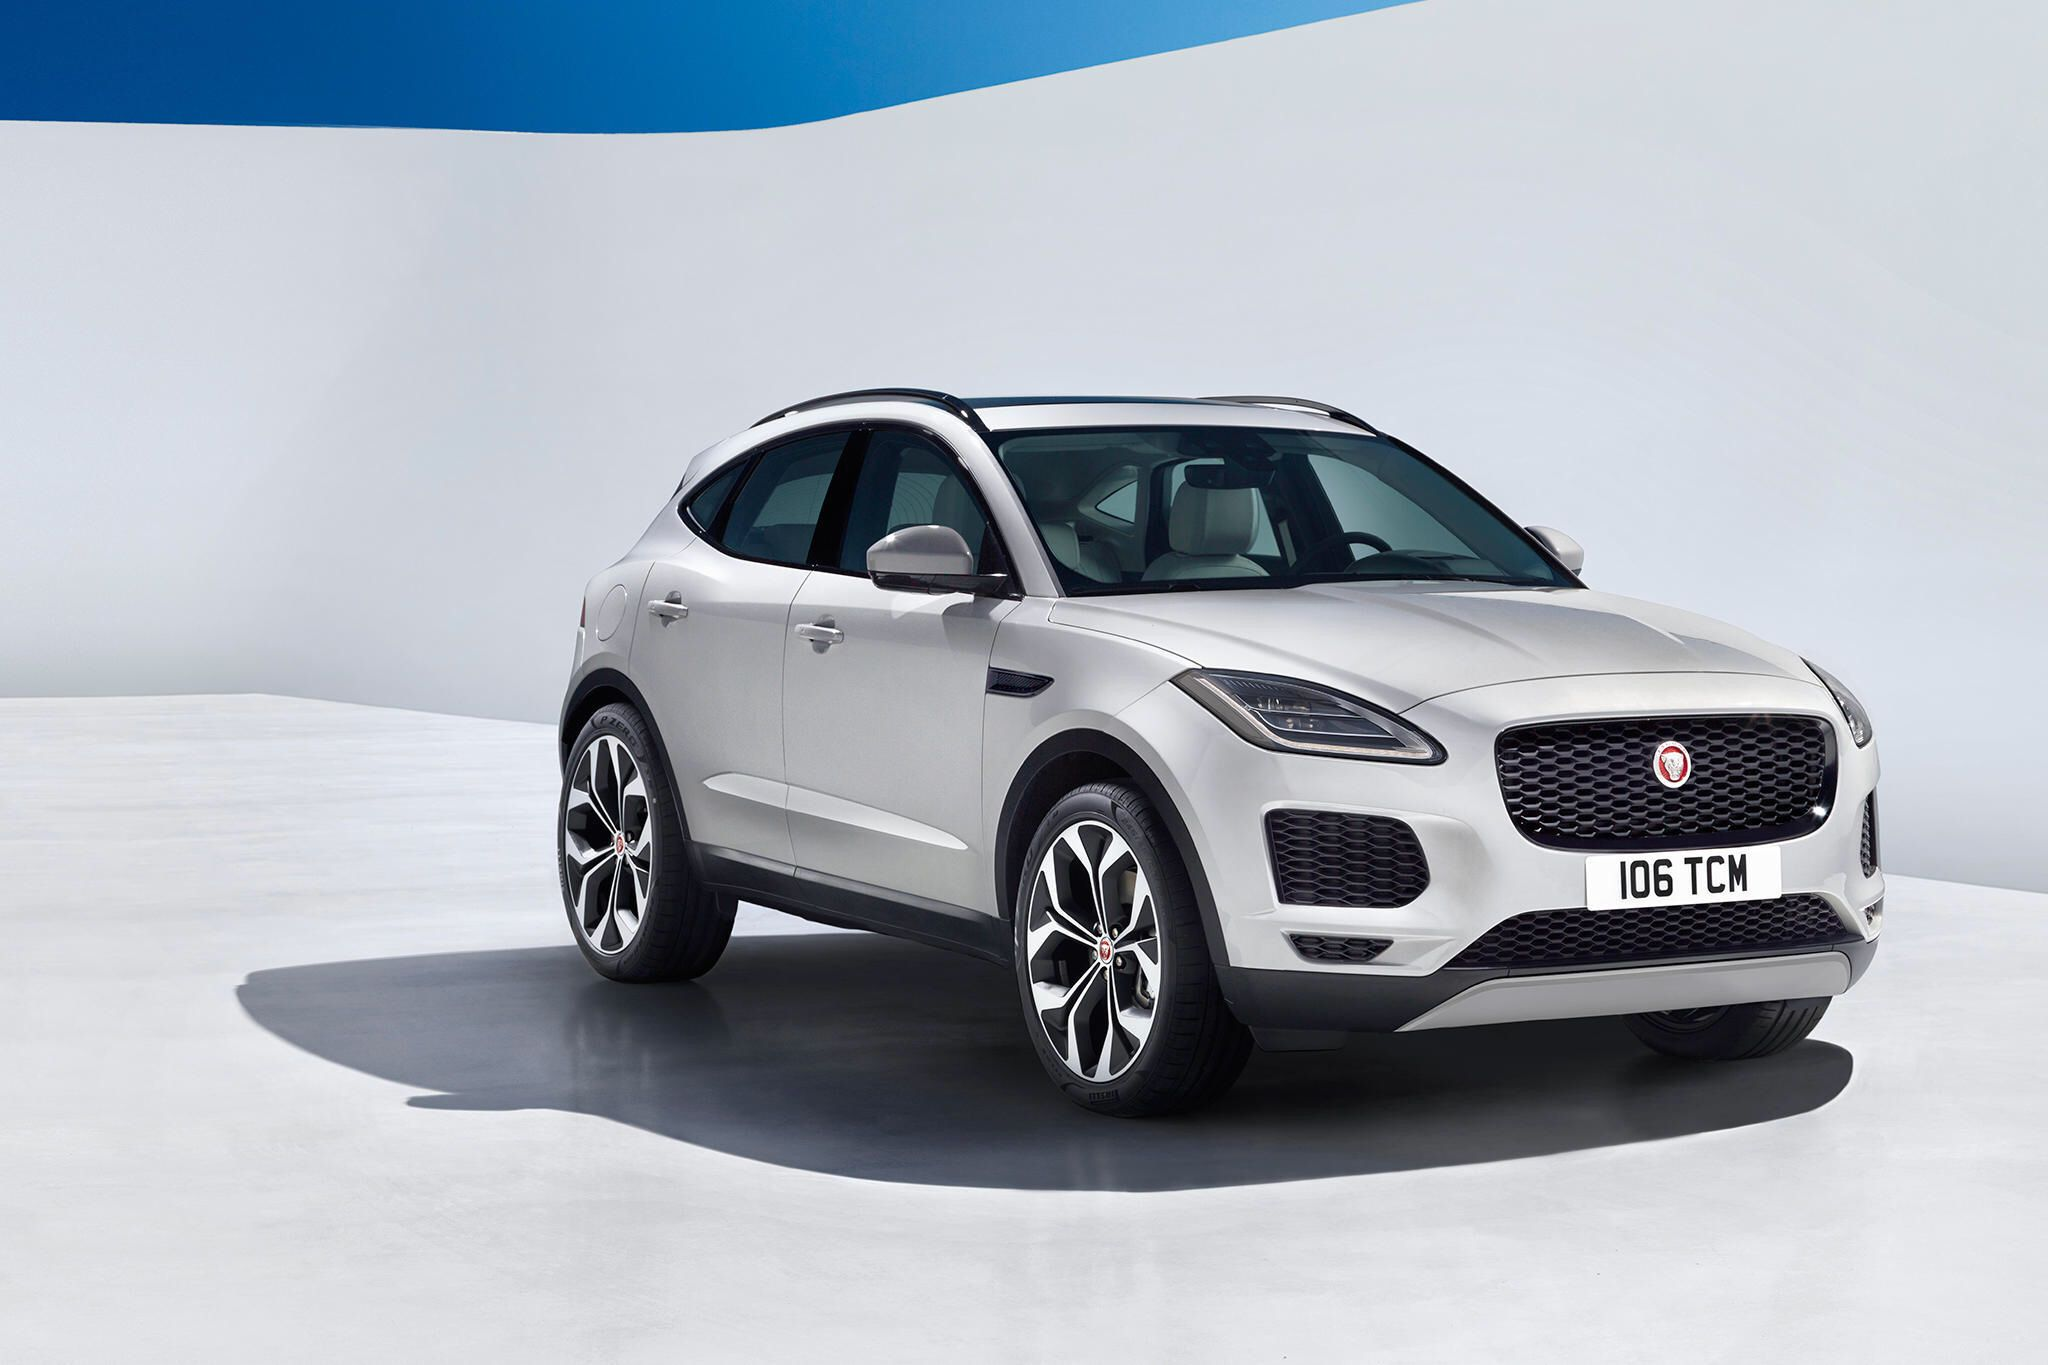 2018 Jaguar E Pace First Look Review Gallery Via Motor Trend News Iphone